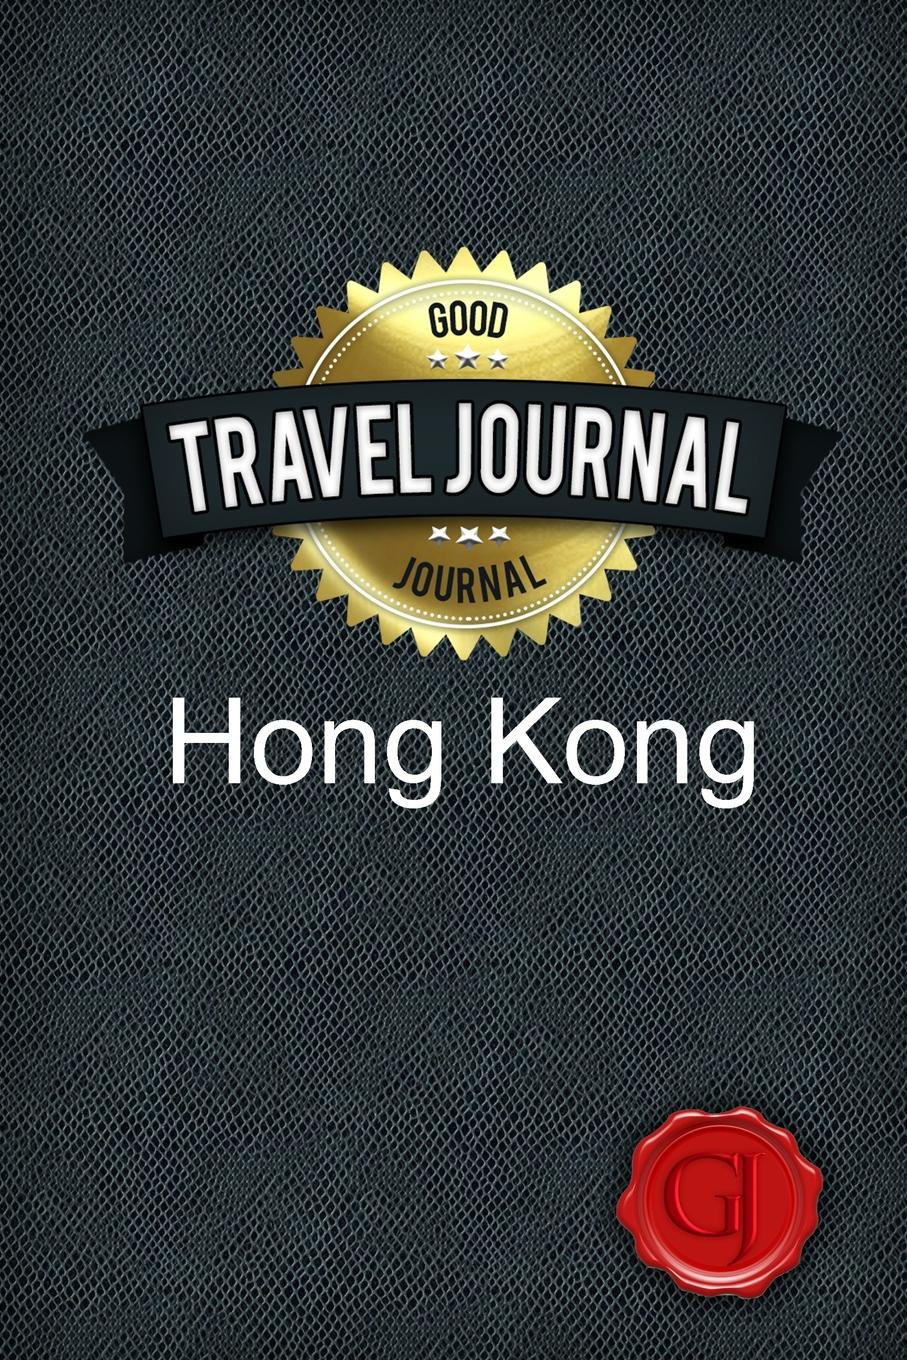 Good Journal Travel Journal Hong Kong crush hong kong